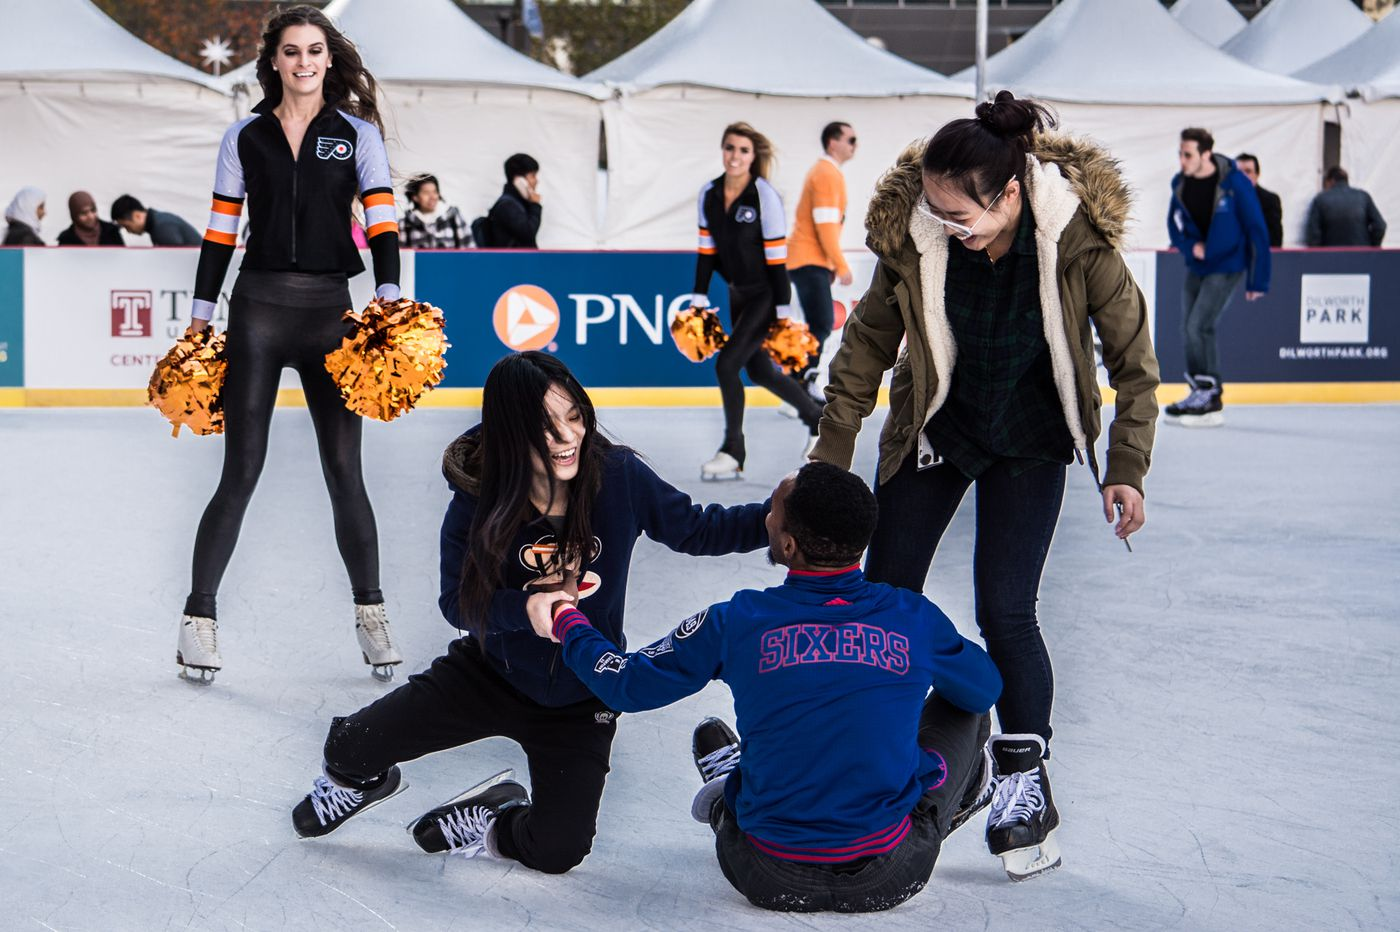 Dilworth Park announces ice skating rink hours for this winter